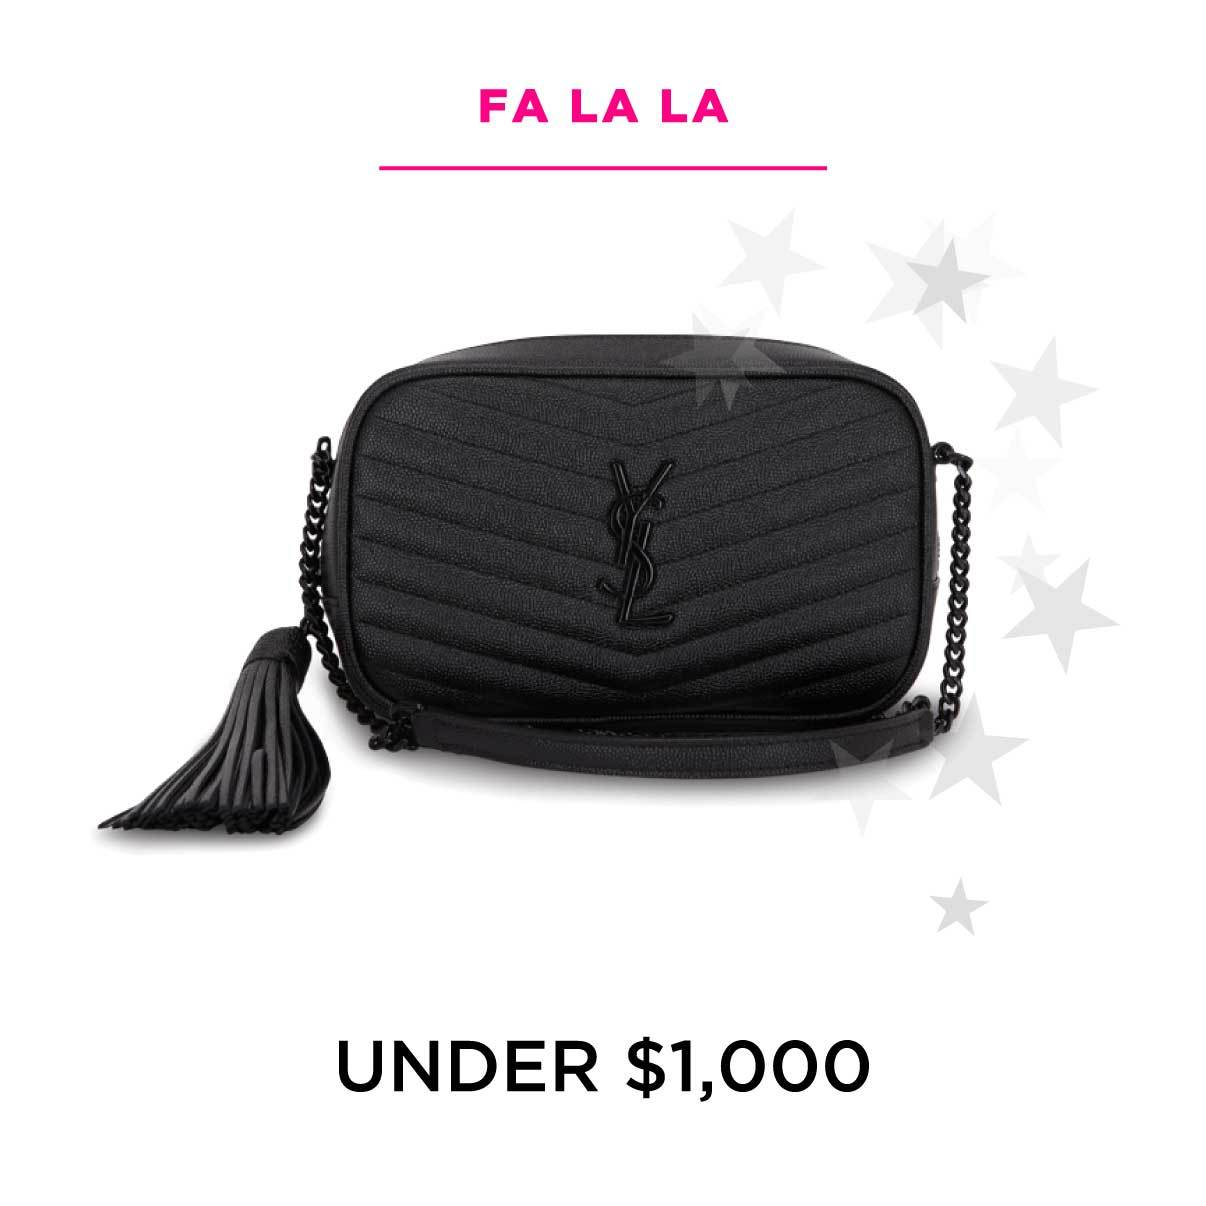 Gifts Under $1,000 for Her